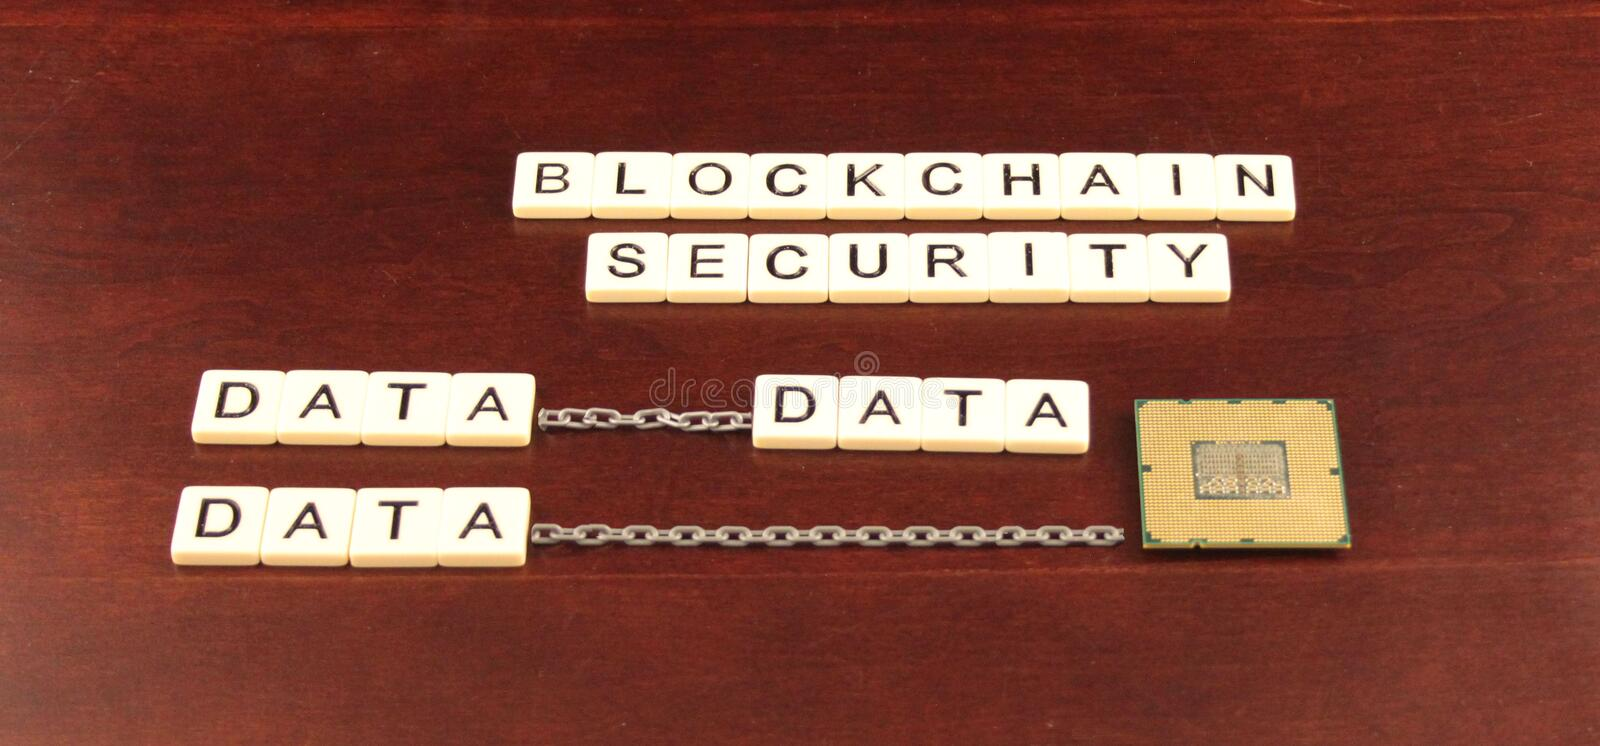 Block chain security spelled out in tiles on a cherry wood background with data and a processor chip underneath royalty free stock images